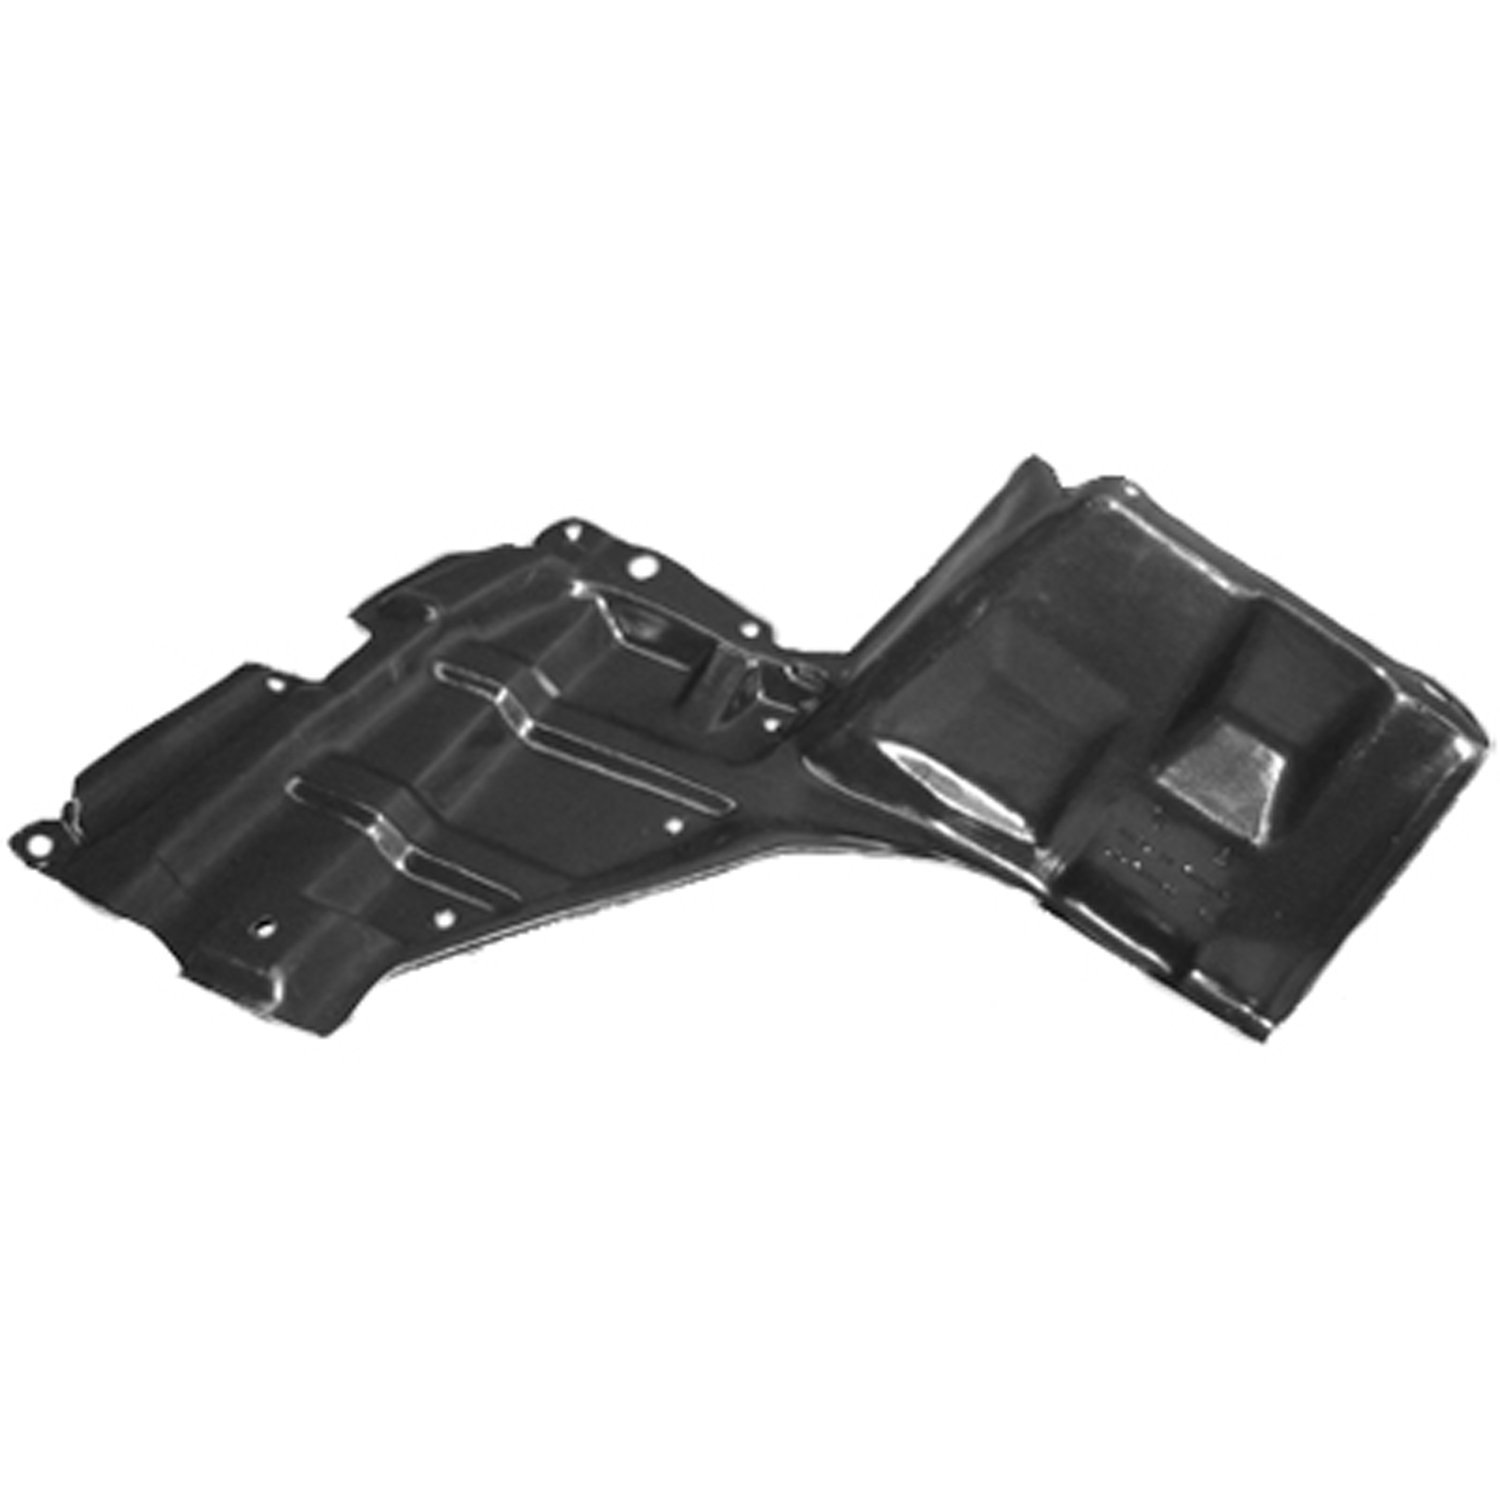 New Front Left Driver Side Engine Splash Shield For 2007-2012 Toyota Yaris Under Cover TO1228138